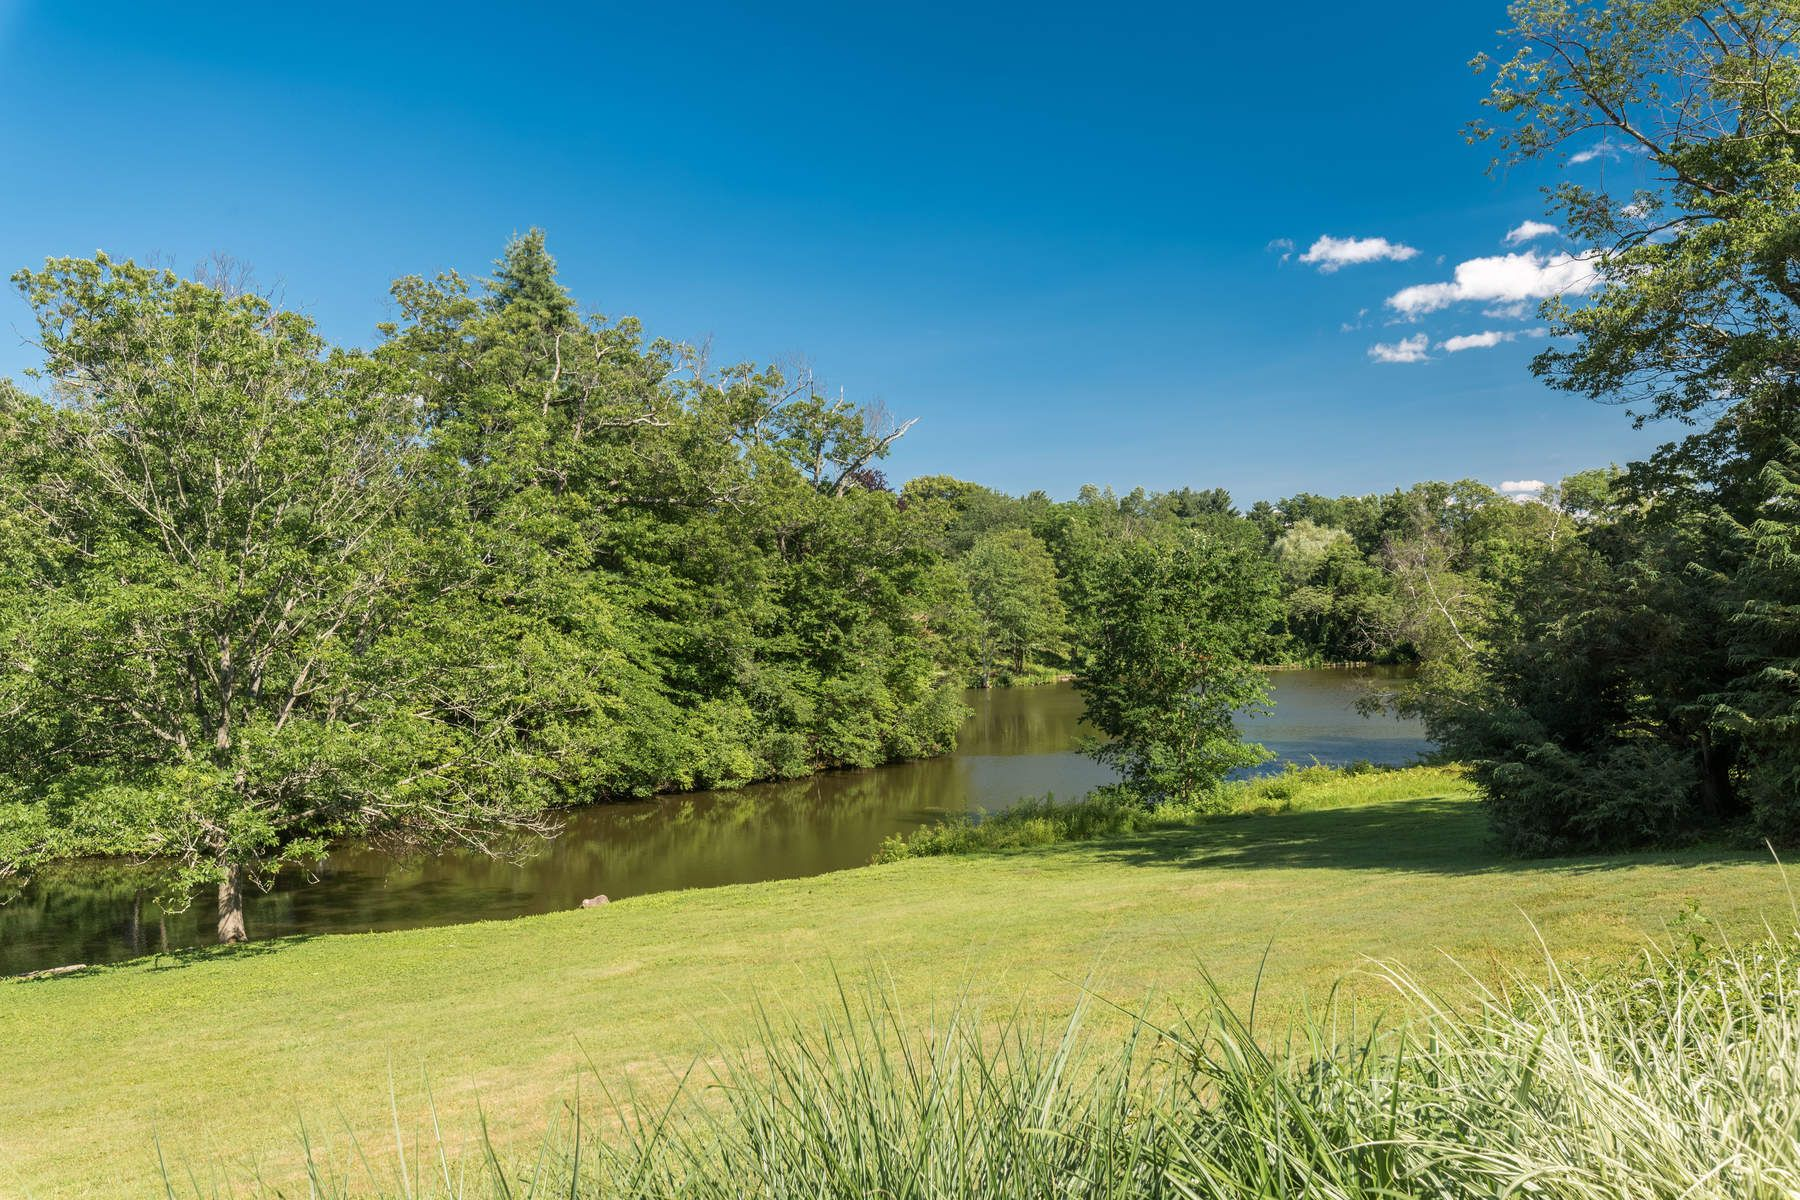 Land for Sale at Meadowcroft Lane 29 Meadowcroft Lane (Land) Greenwich, Connecticut 06831 United States